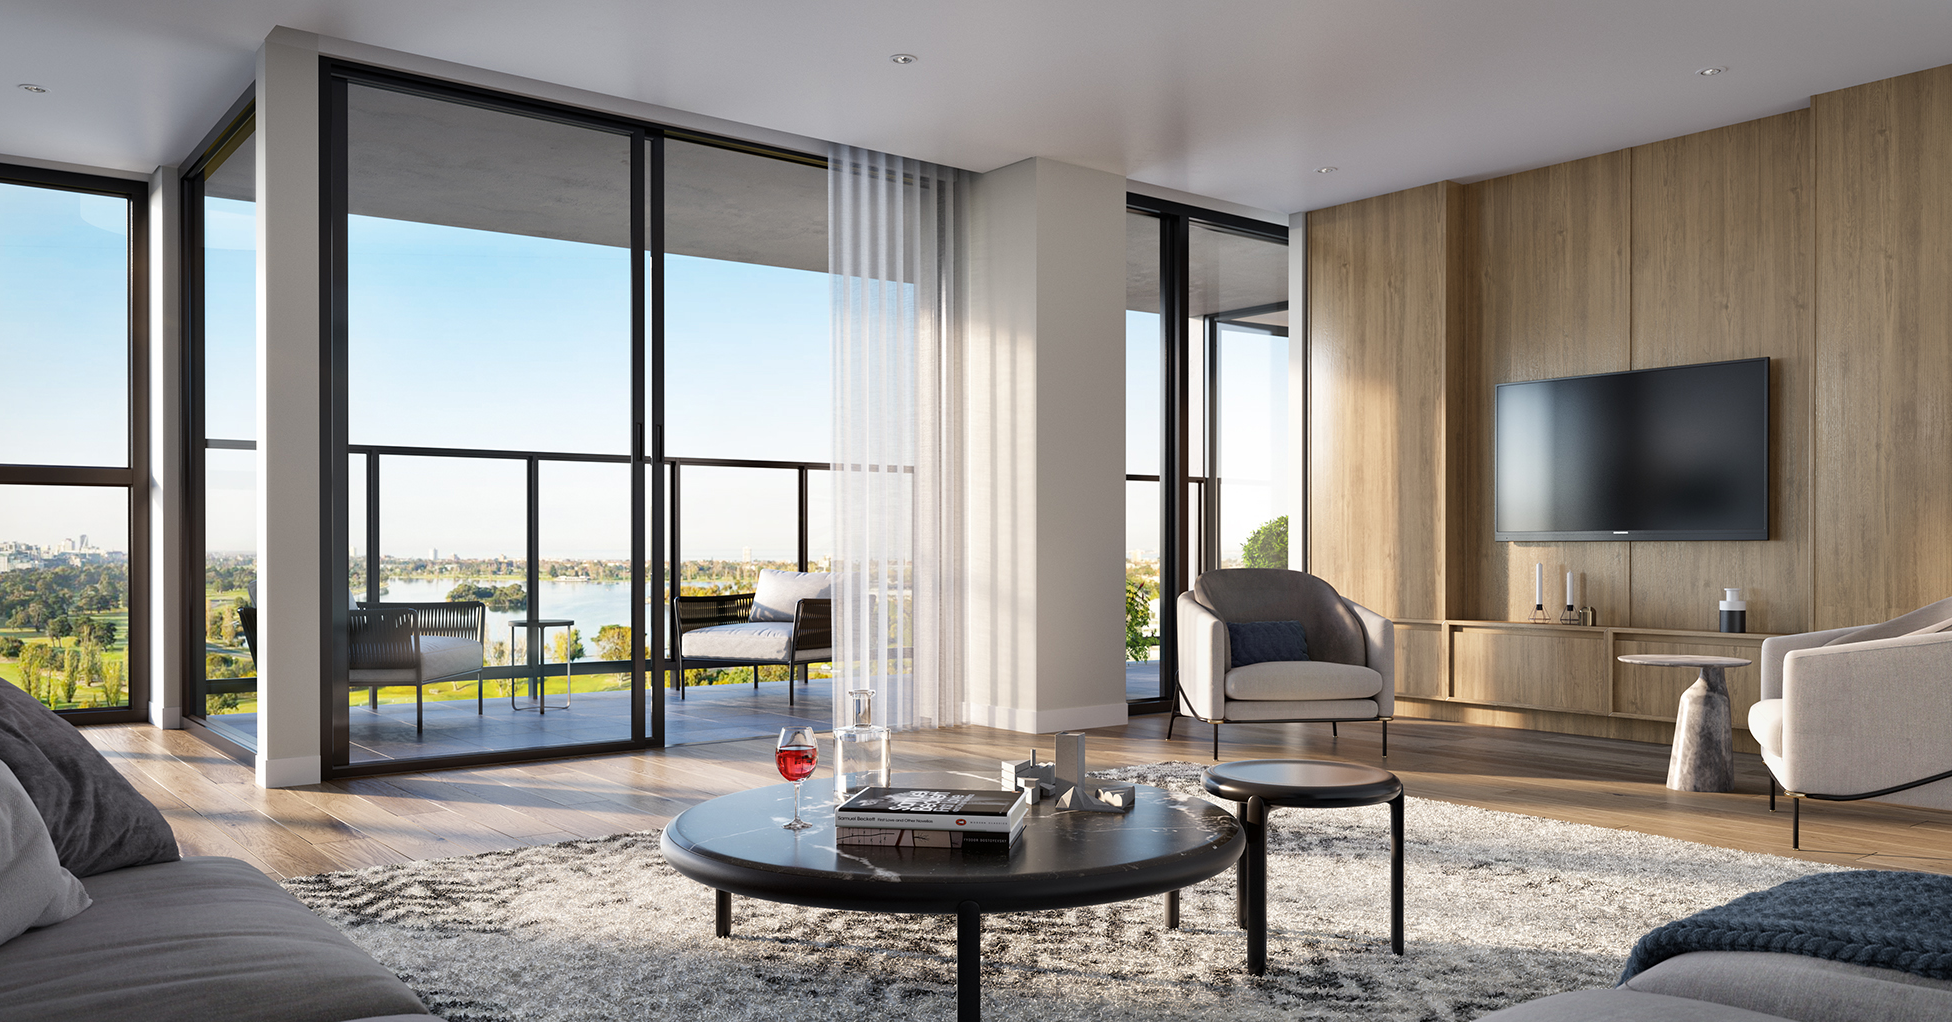 The development will be complete with world-class facilities, an assortment of entertainment, recreation and communal spaces to encourage wellbeing and social connectivity.